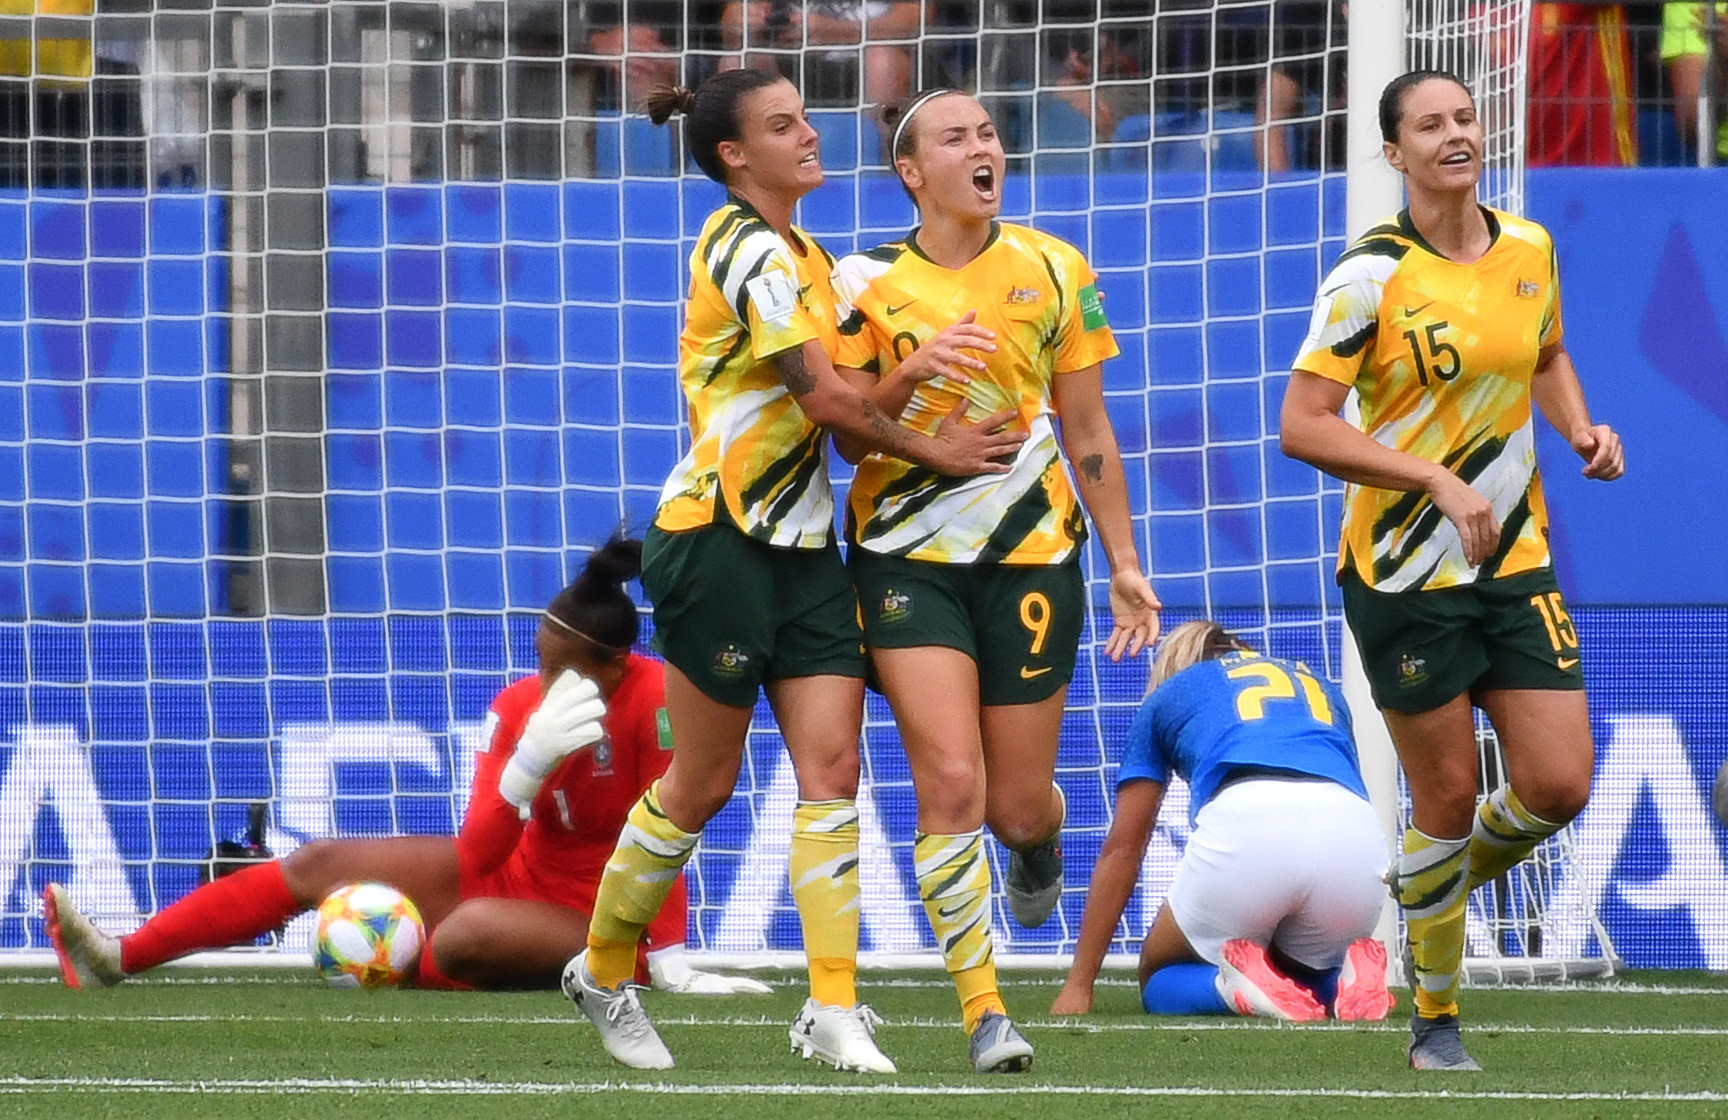 Australia stun Brazil with stirring fightback at FIFA Women's World Cup